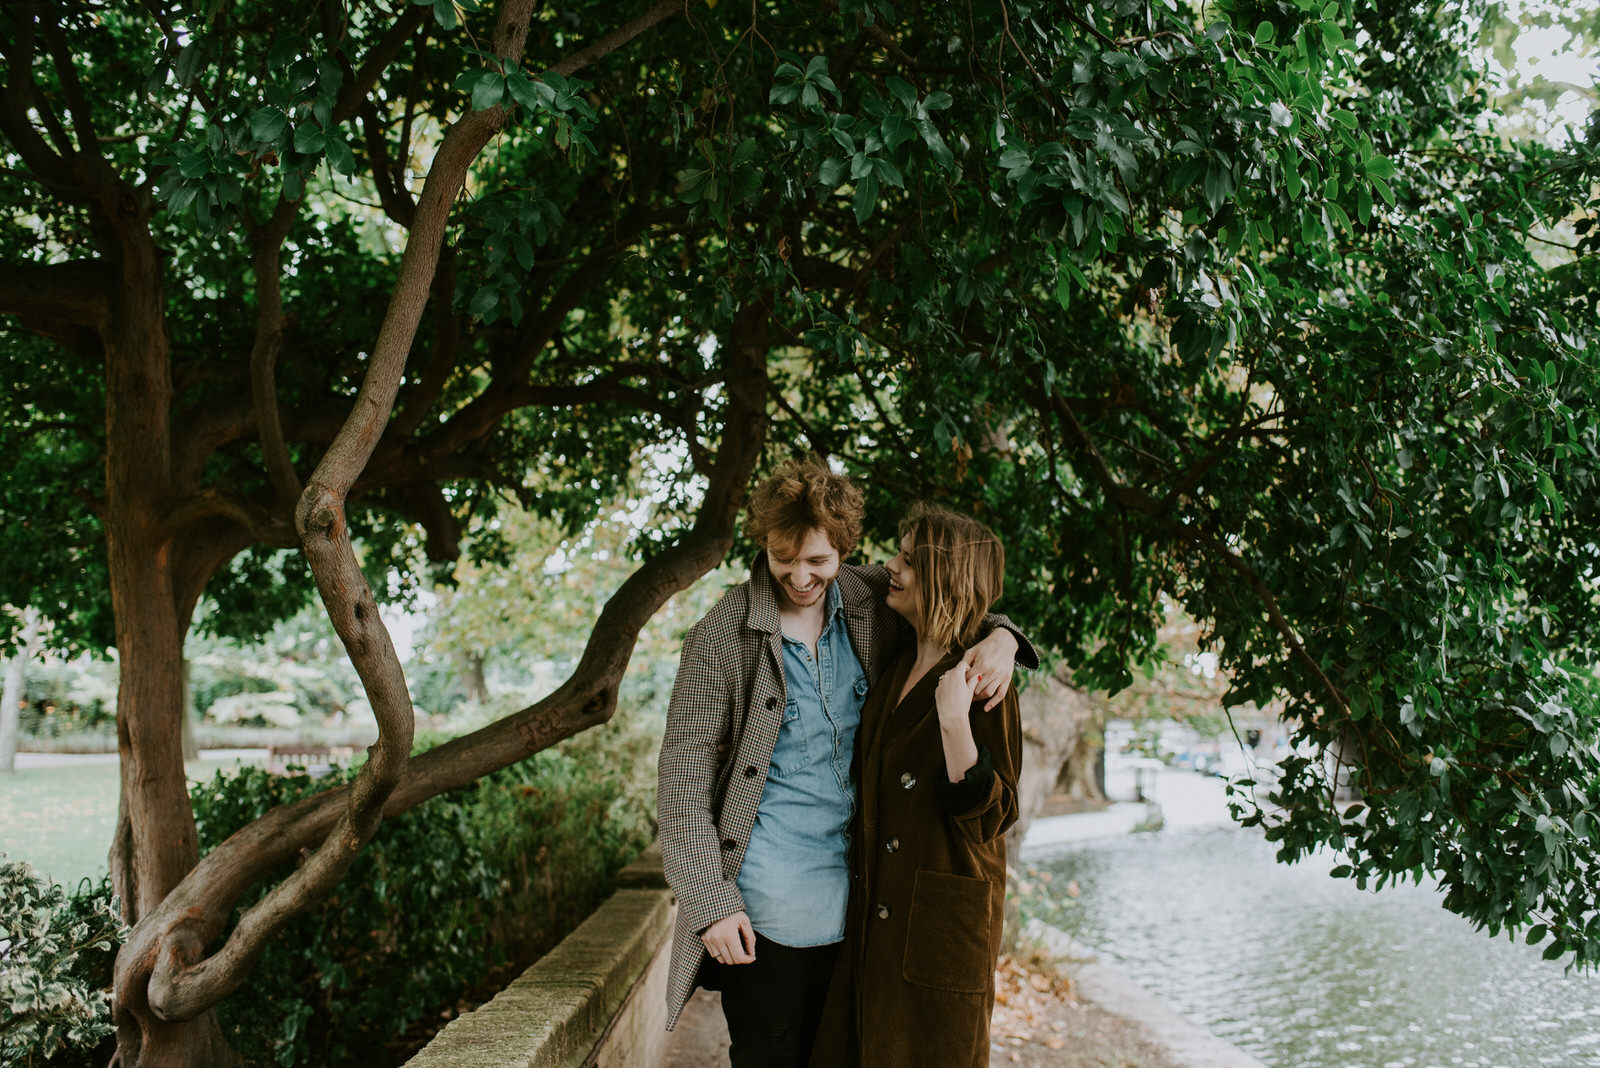 Olivia_Richard_Engagement_Session (48 of 74).jpg